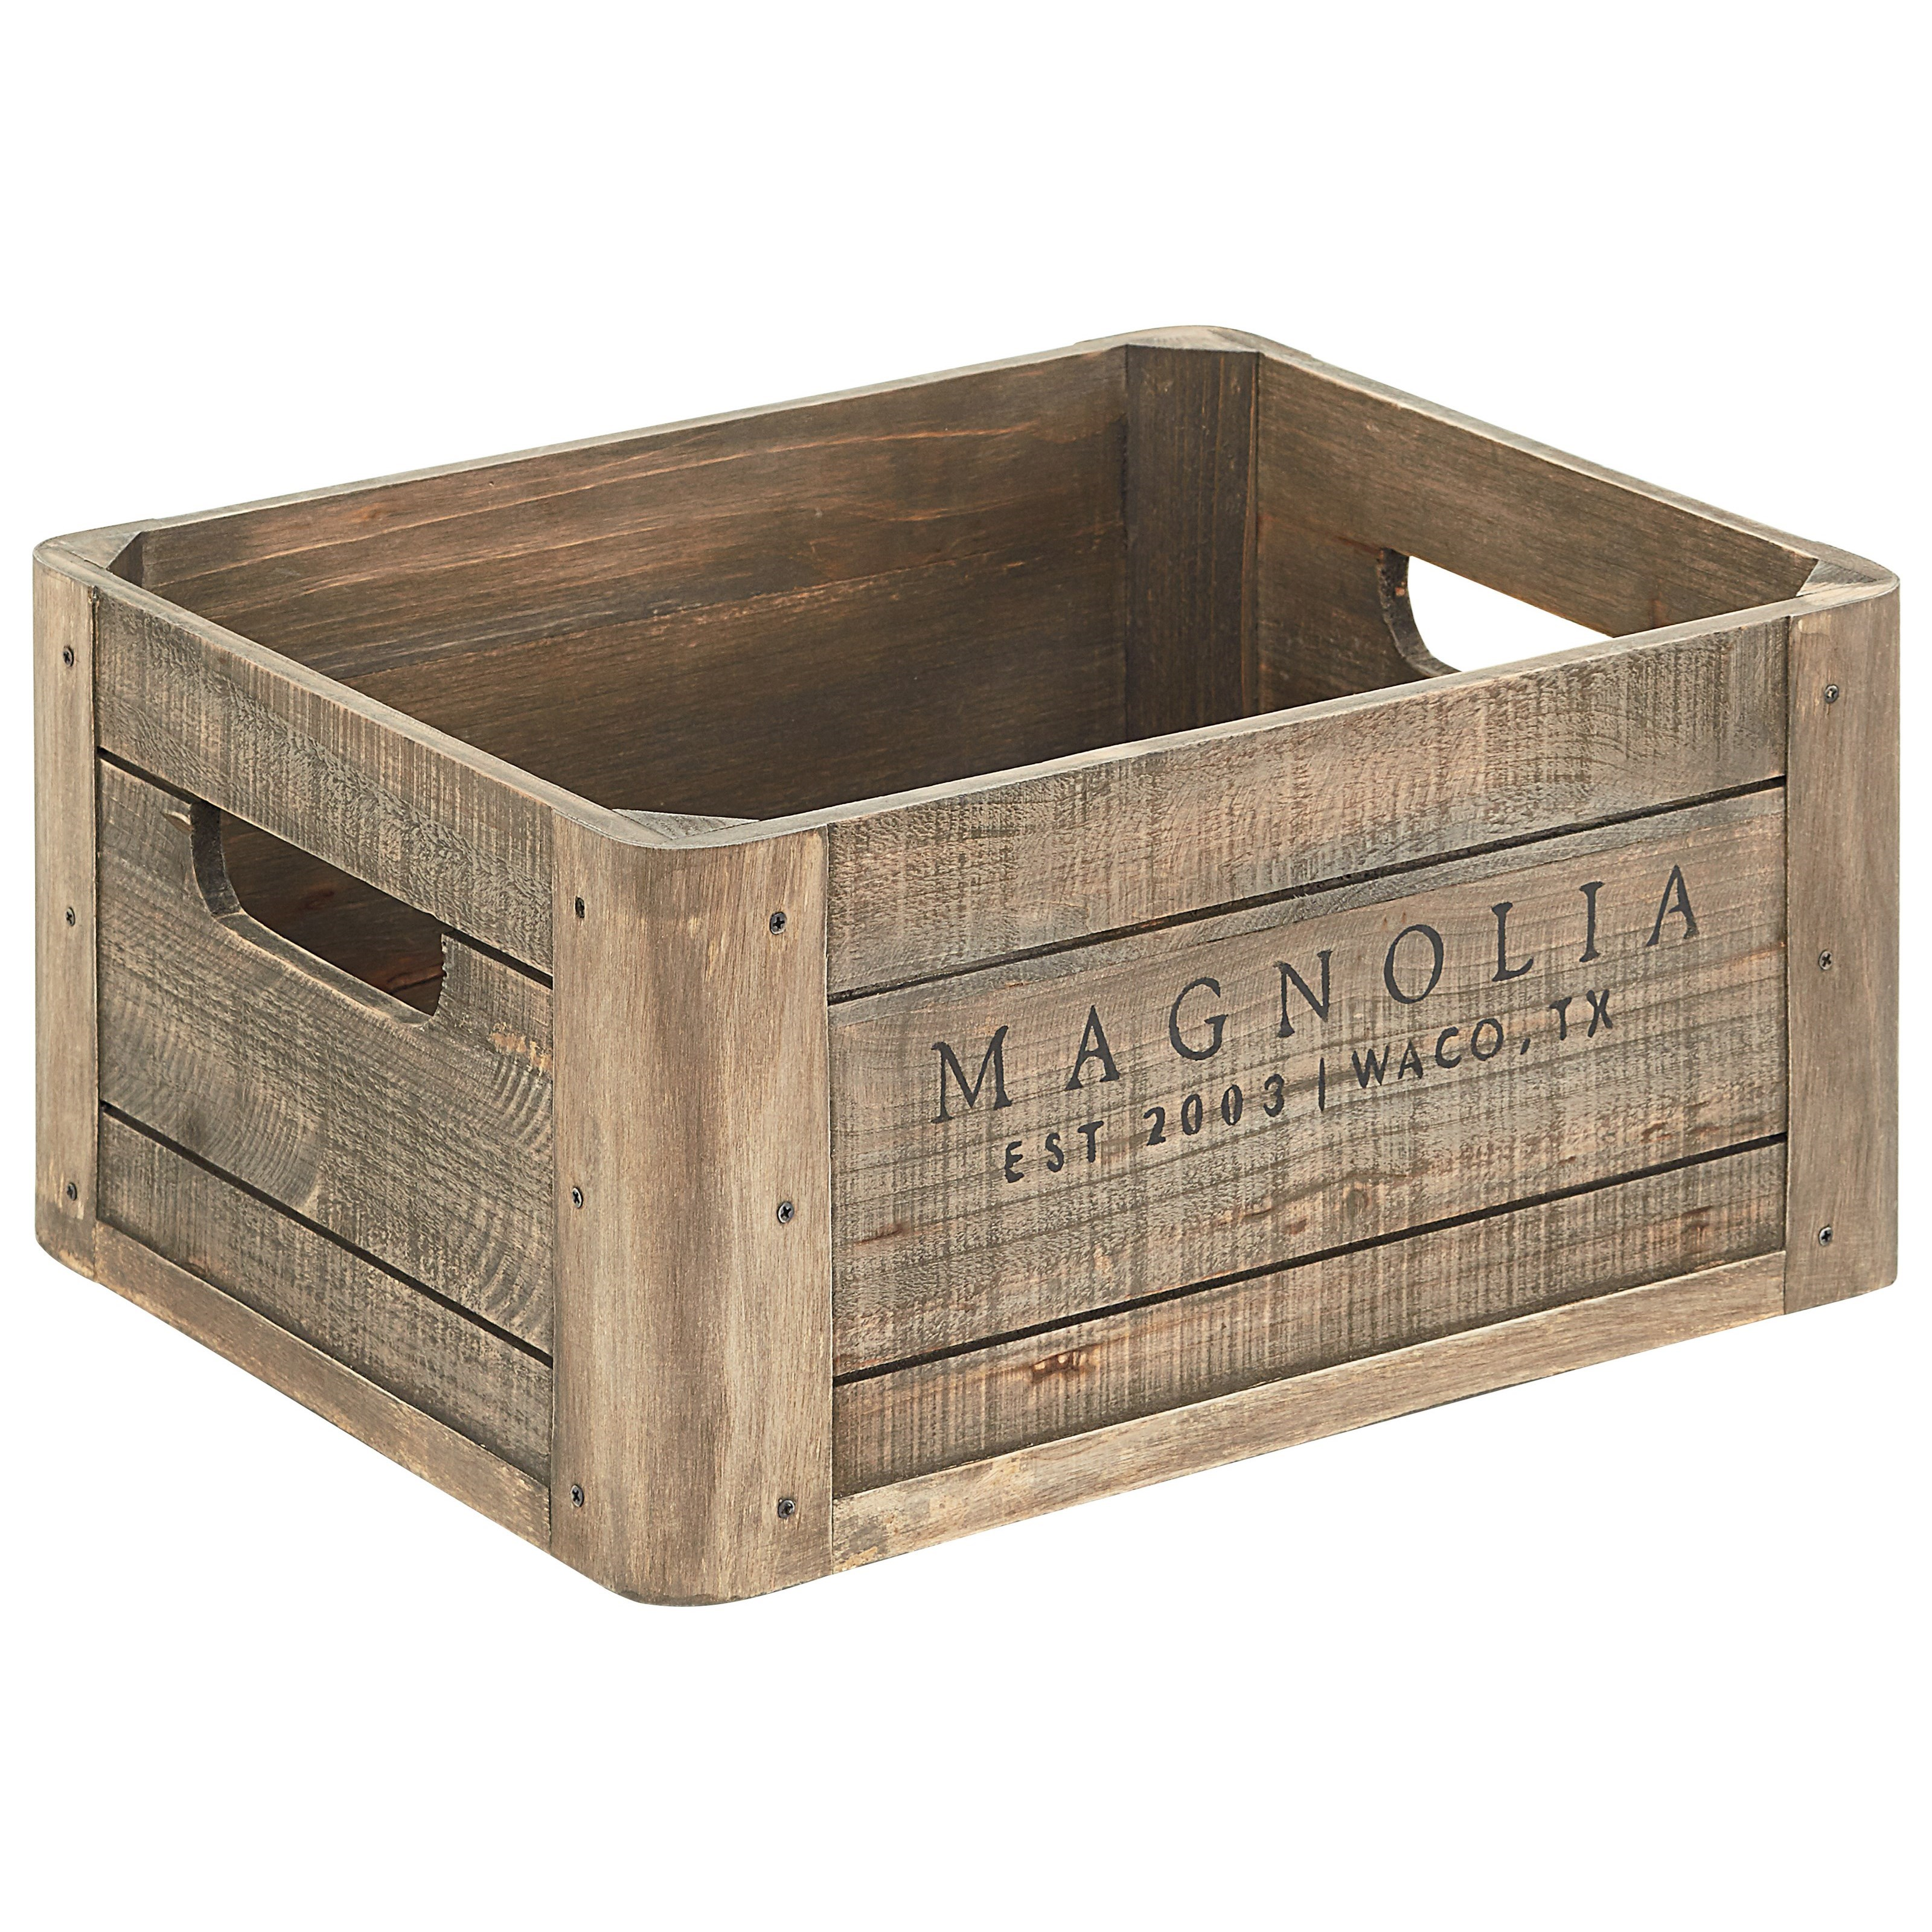 Accessories Wood Crate with Magnolia Logo by Magnolia Home by Joanna Gaines at Sadler's Home Furnishings